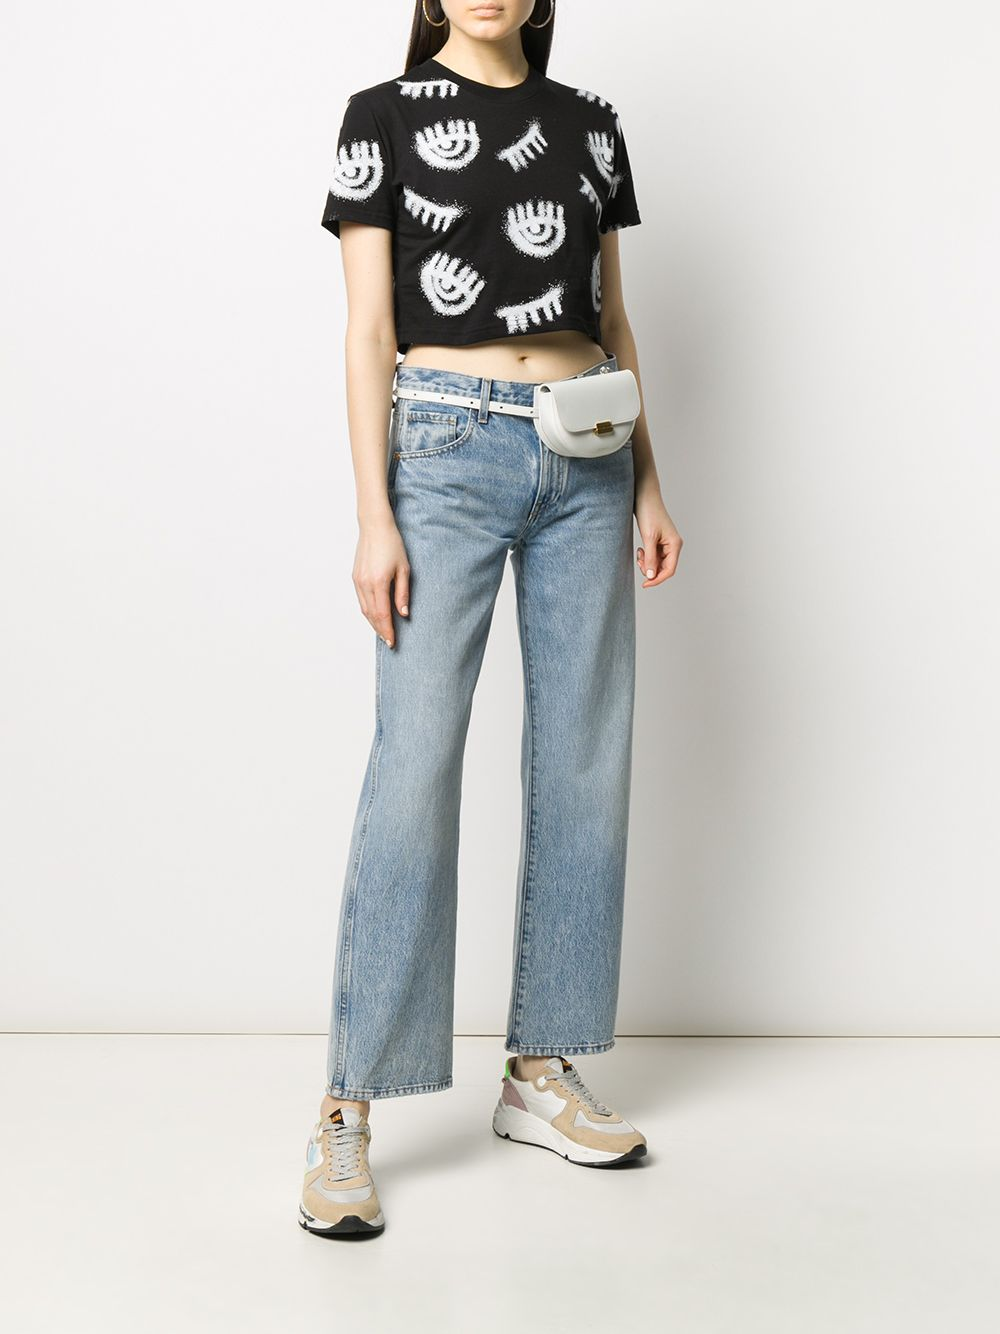 Picture of Chiara Ferragni | Eye Print Cropped T-Shirt